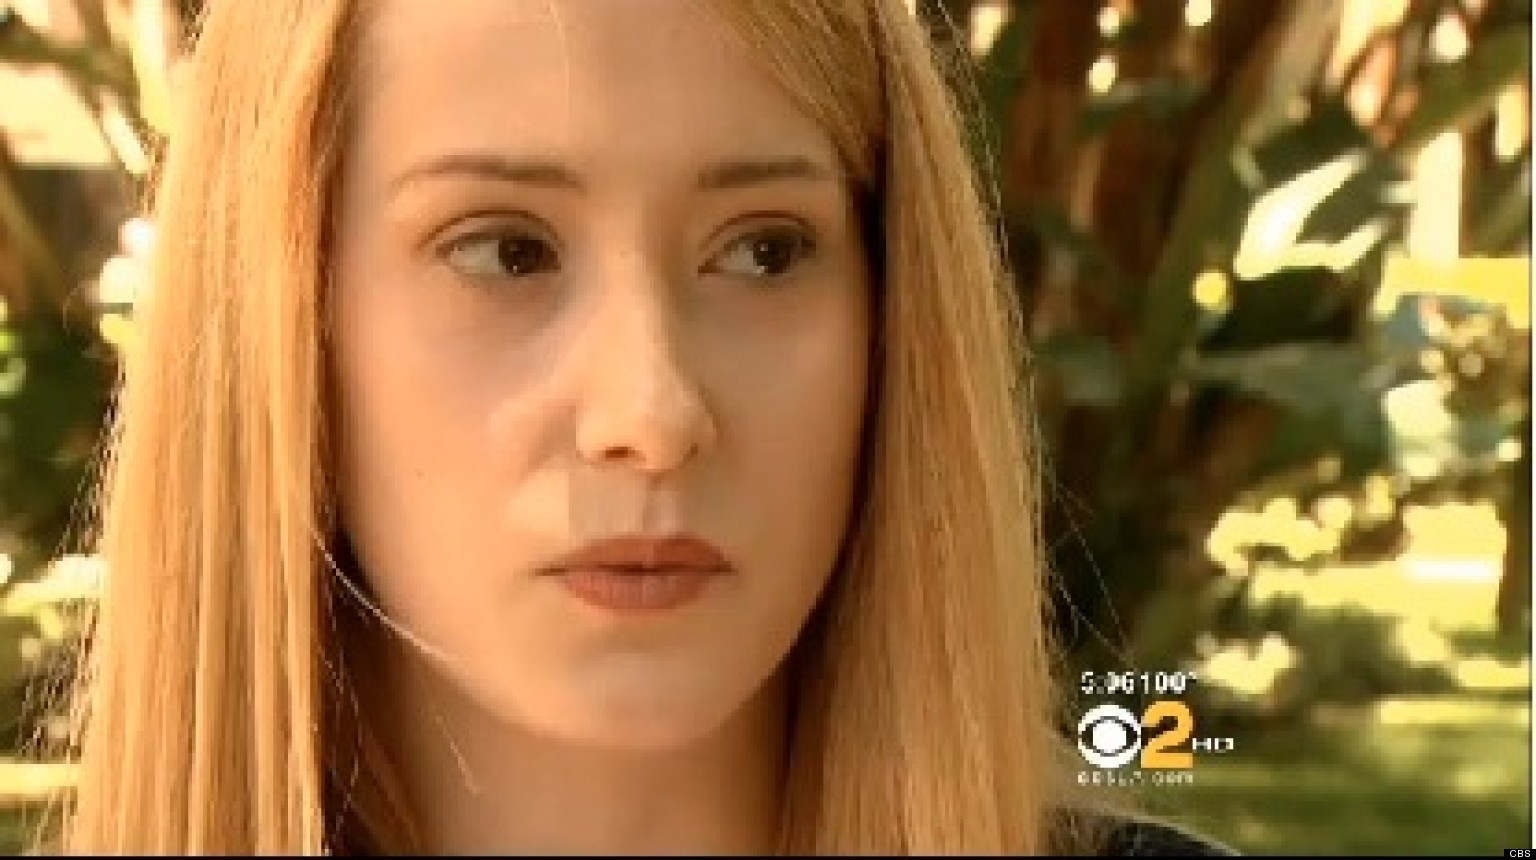 USC Isn't Taking My Rape Seriously, Claims Student